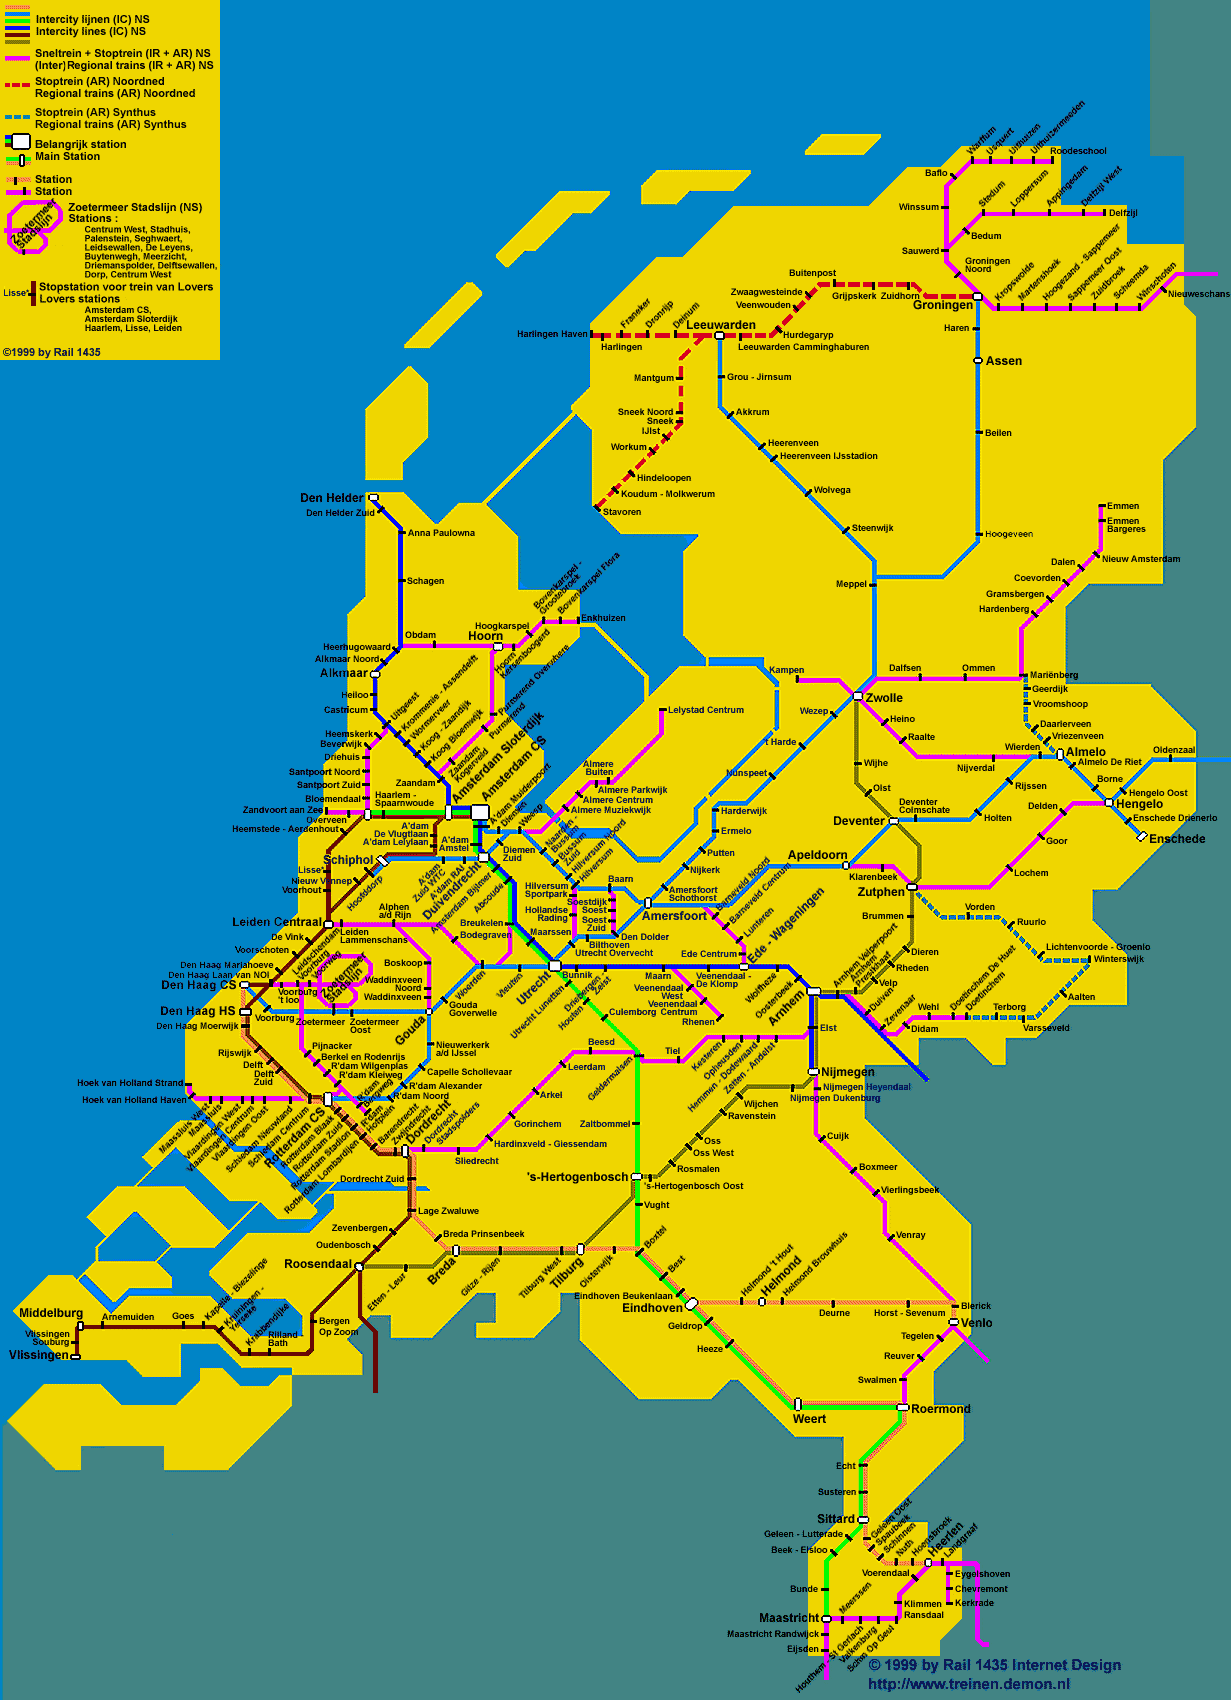 travel advice for the netherlands